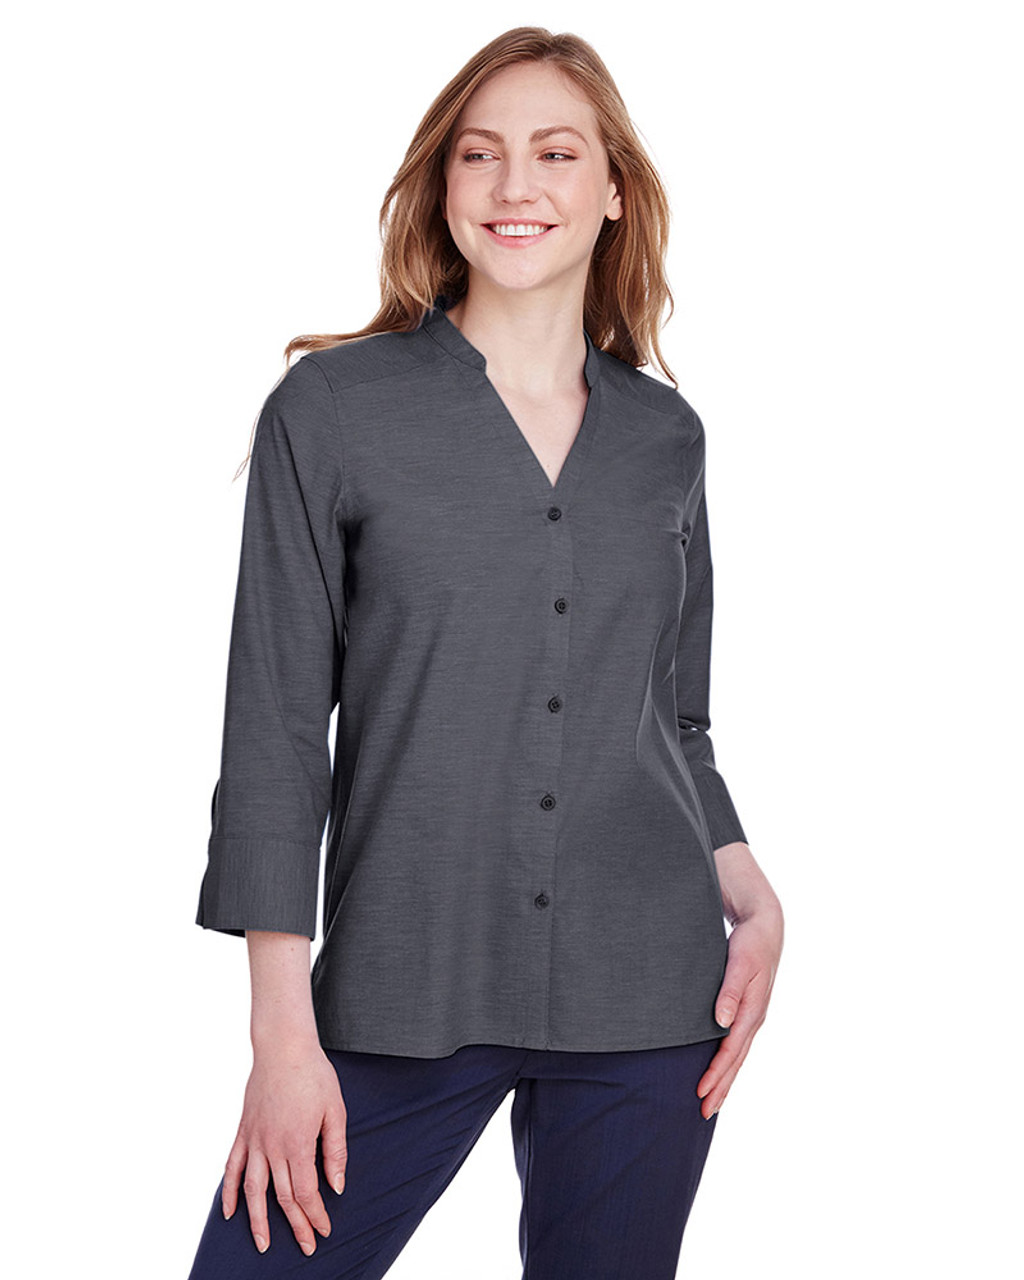 Black - DG562W Devon & Jones Ladies' Crown Collection™ Stretch Pinpoint Chambray 3/4 Sleeve Blouse | Blankclothing.ca